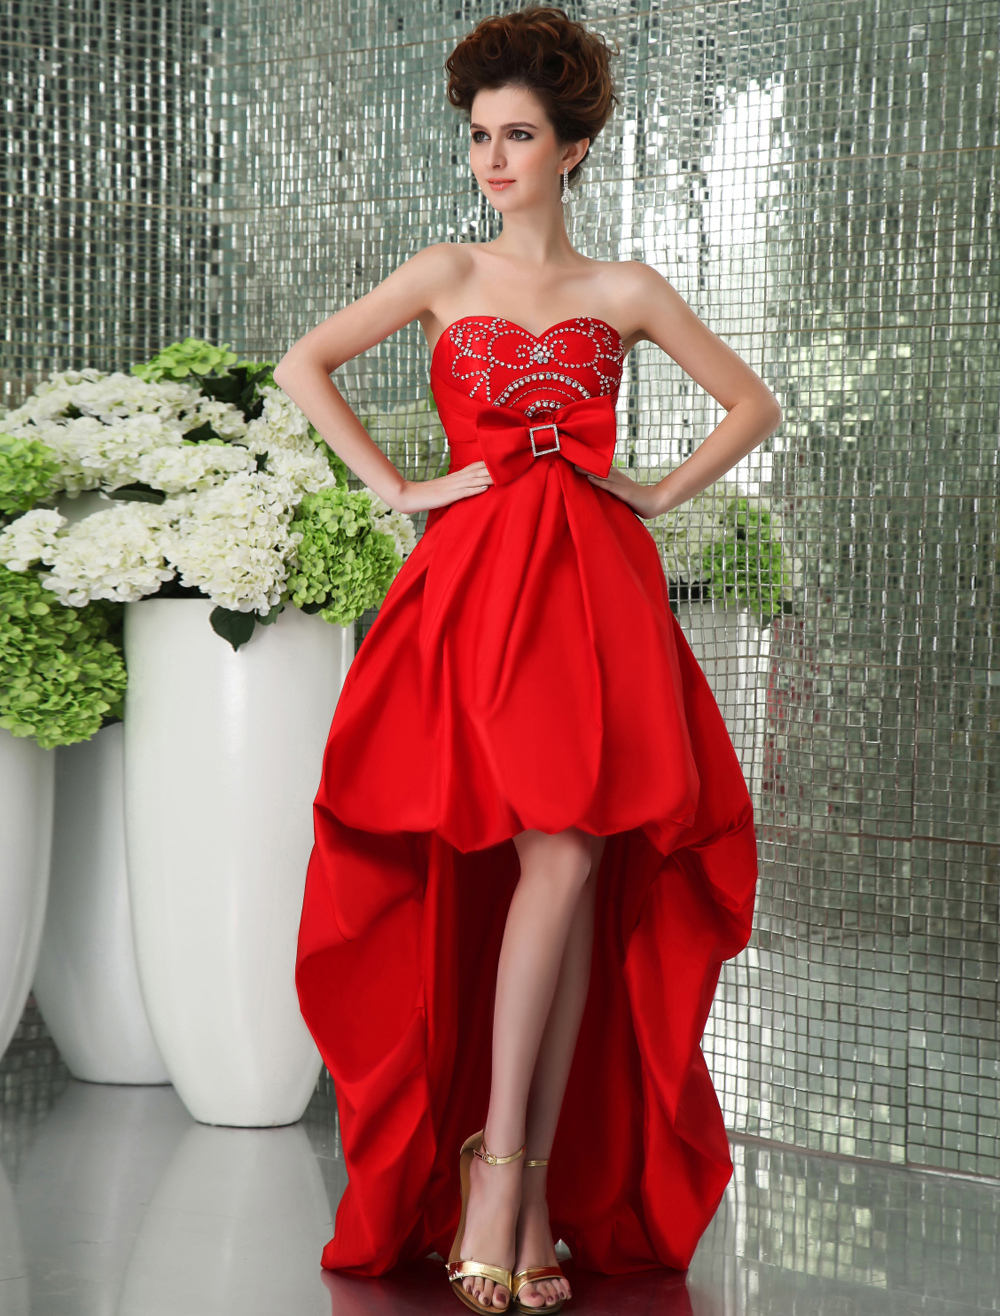 Red Asymmetrical Prom Dress with Empire Waist Strapless Bow (Wedding Prom Dresses) photo